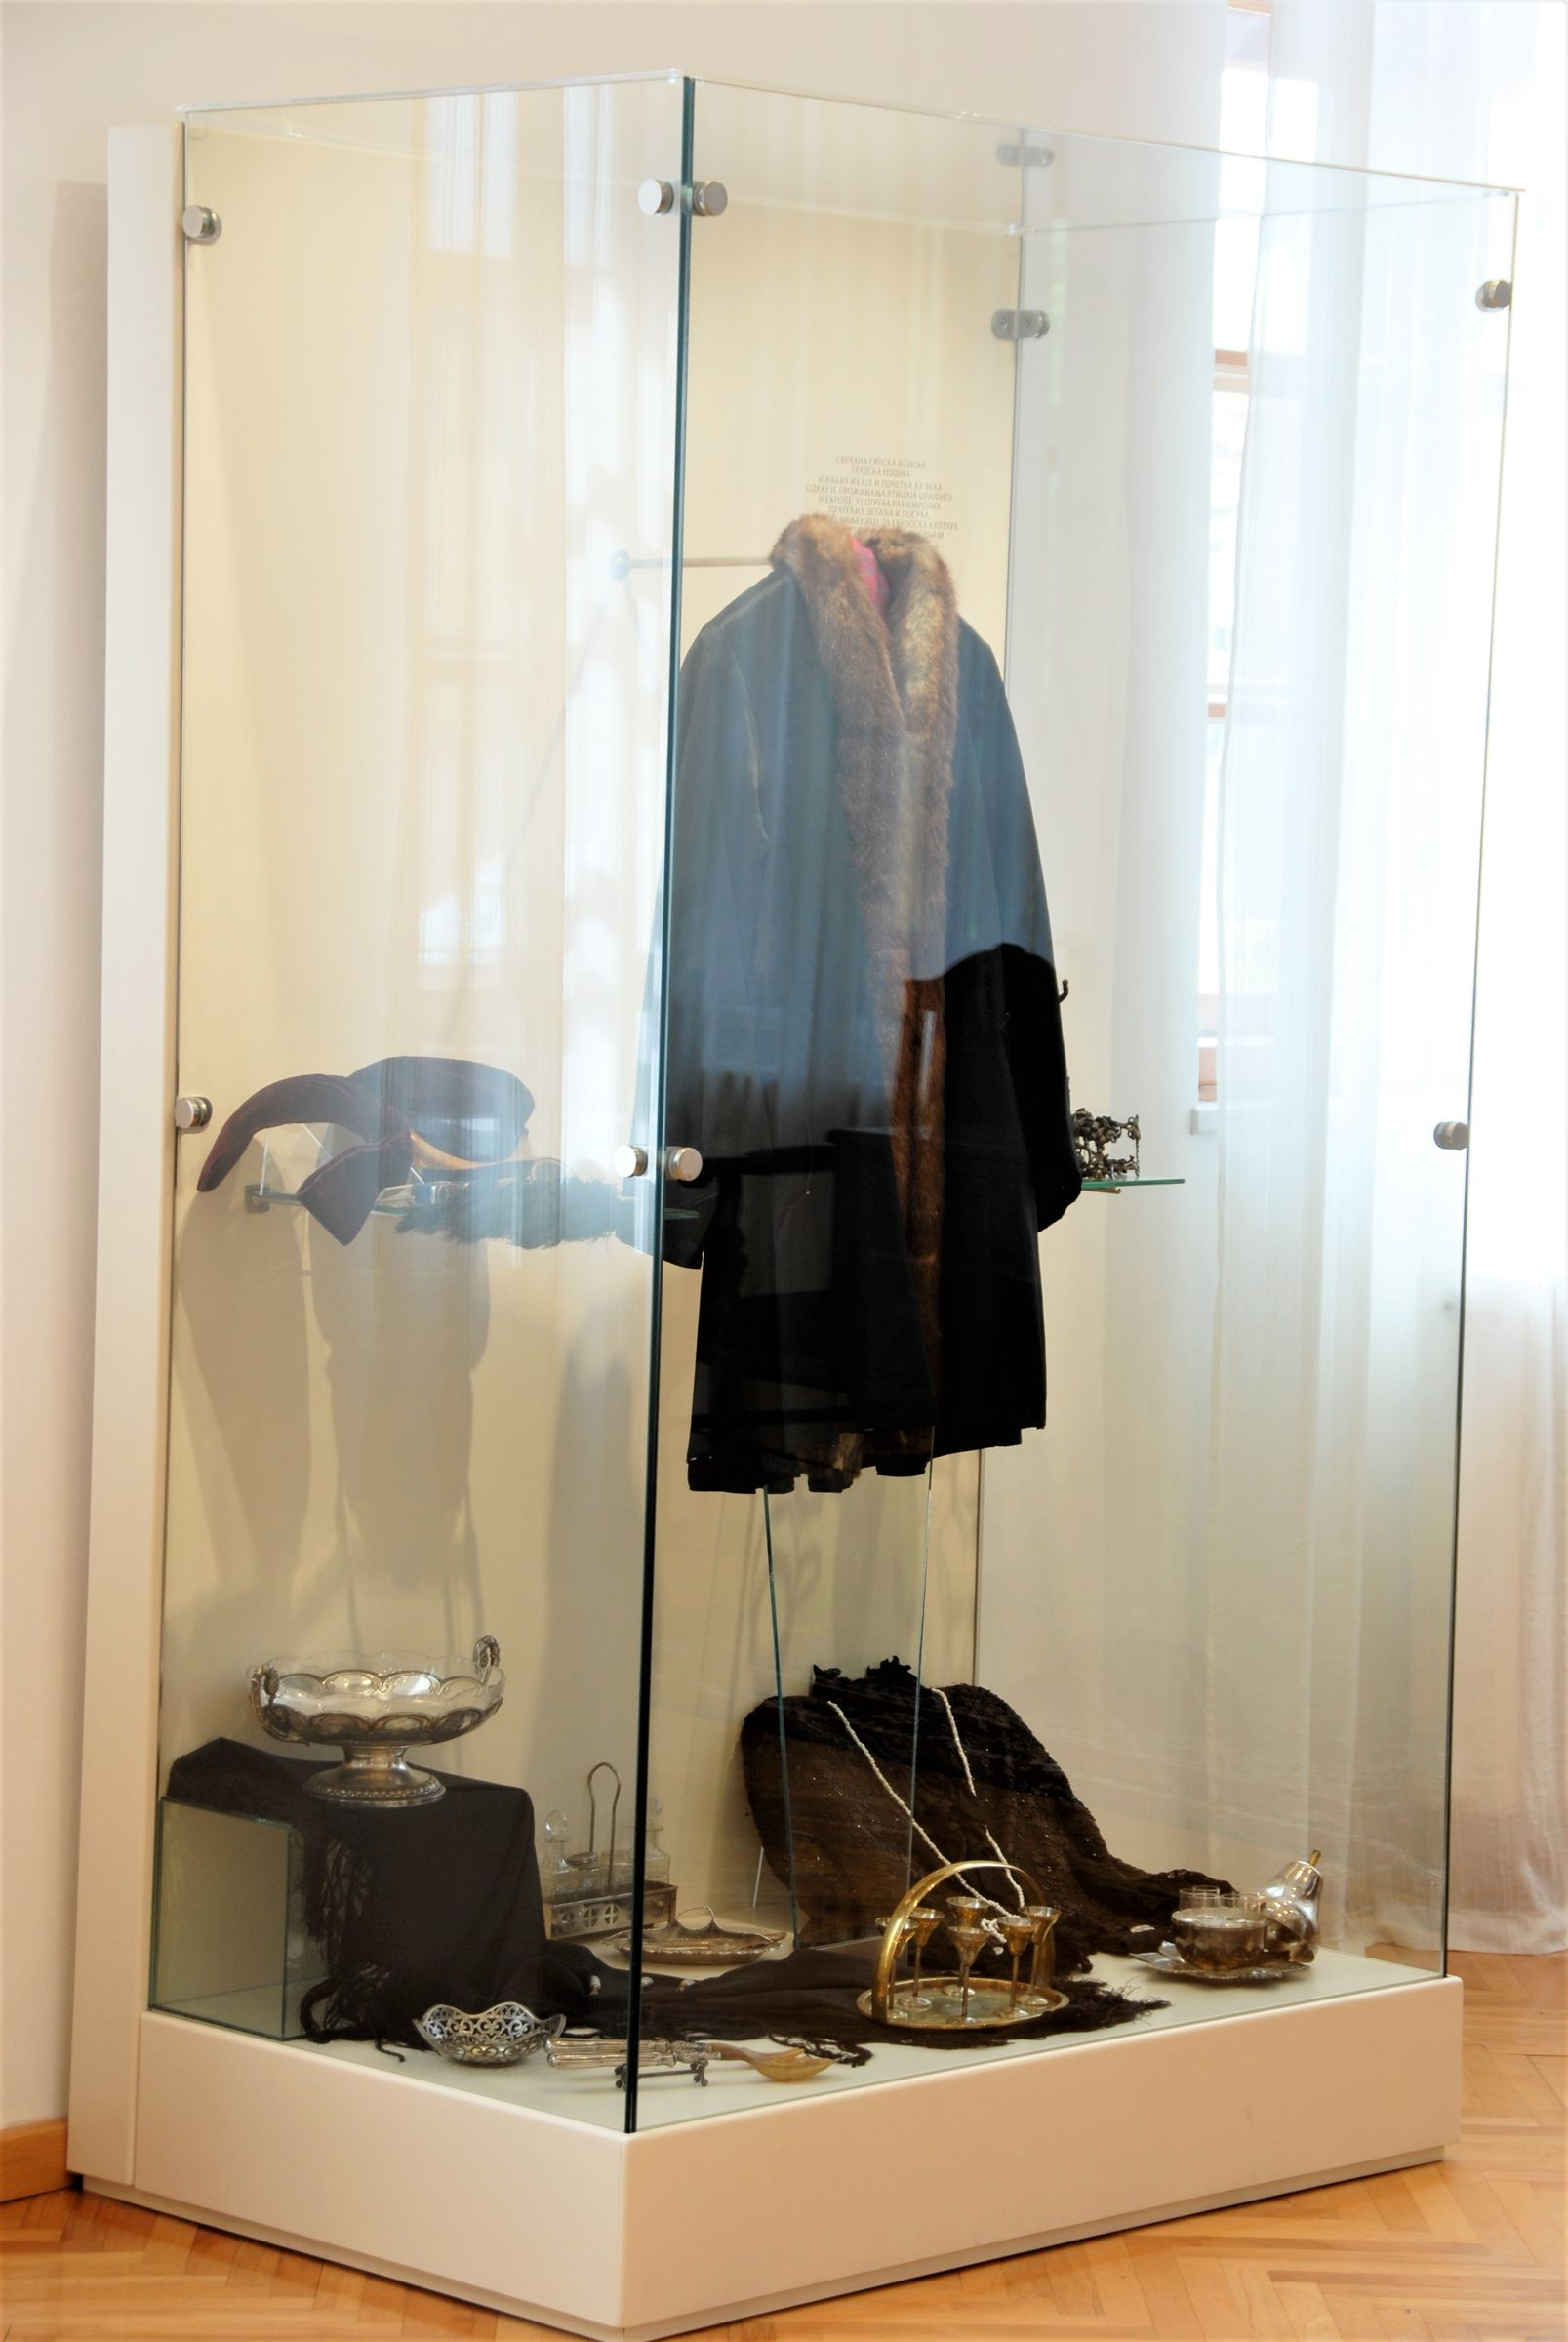 Display case with a women's costume between the two wars